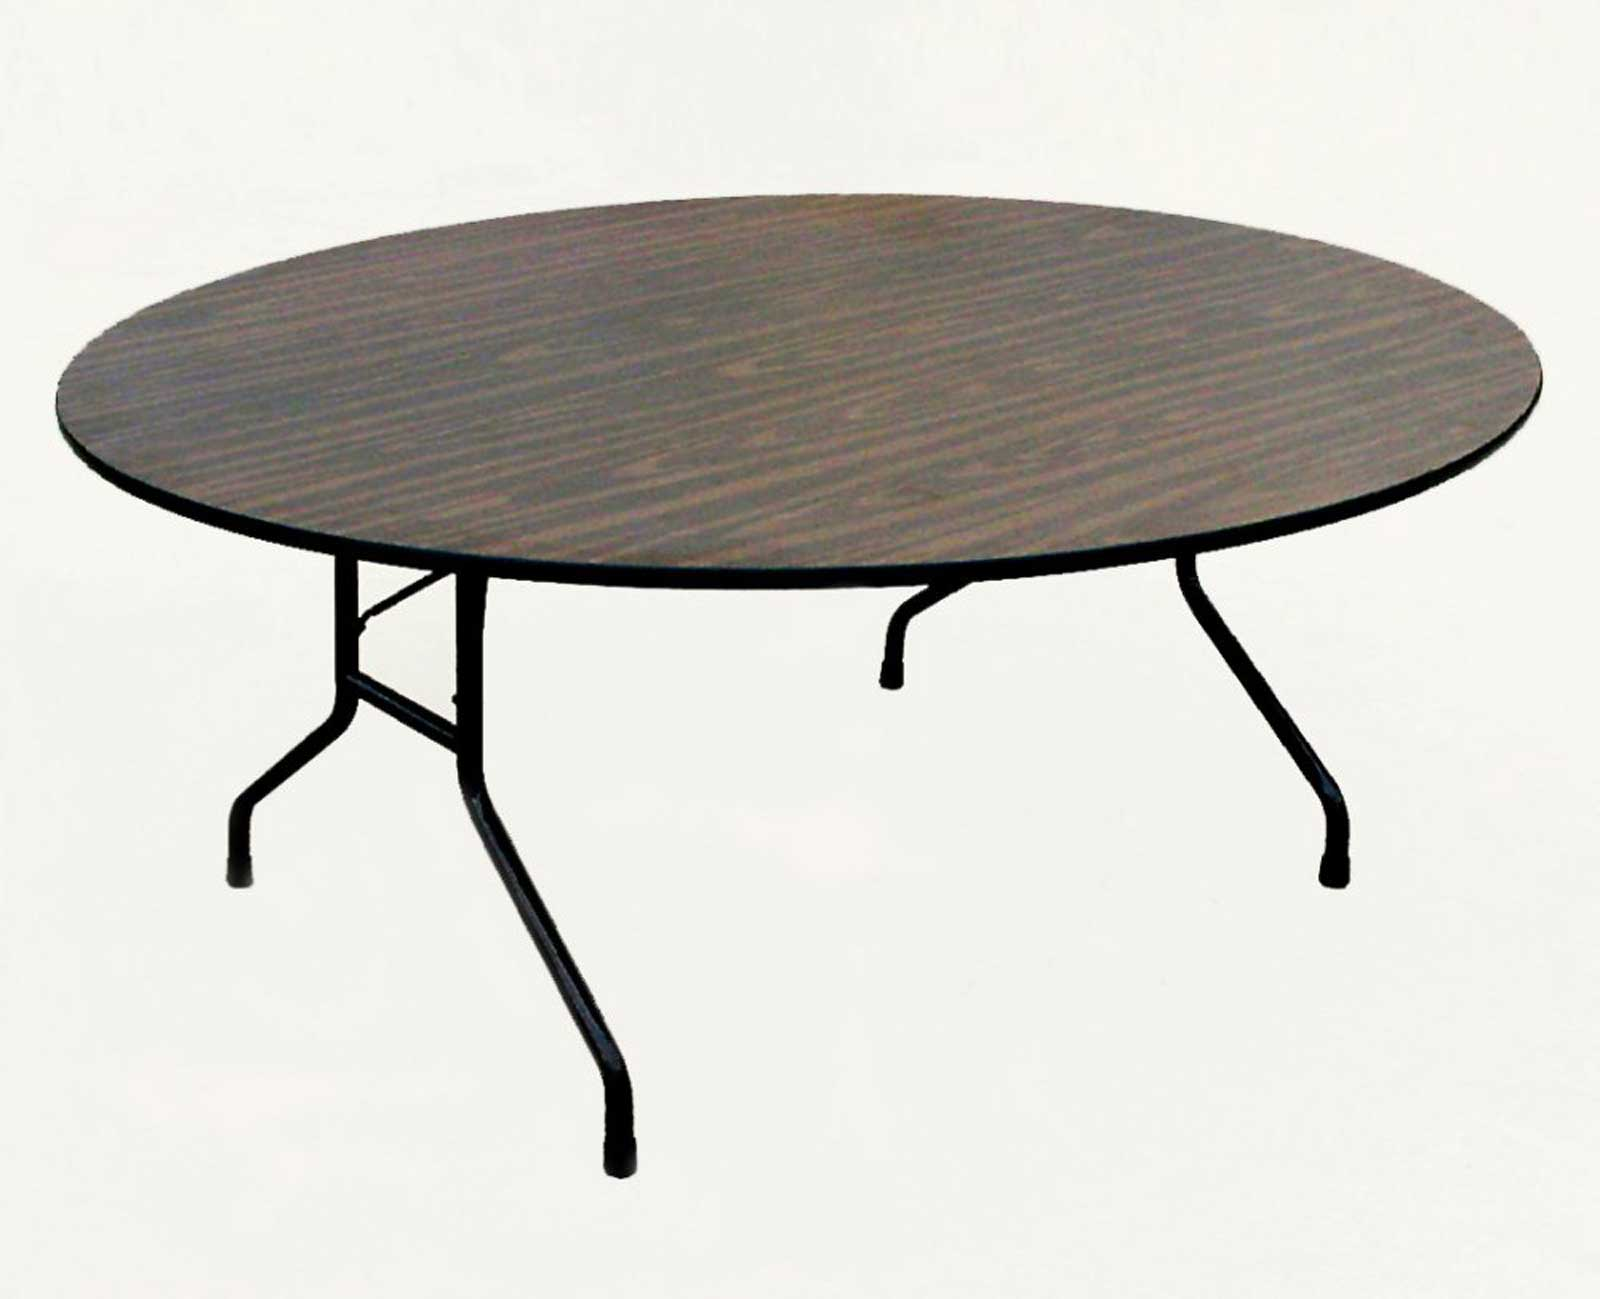 Correll Walnut High Pressure Top Round Folding Table 60